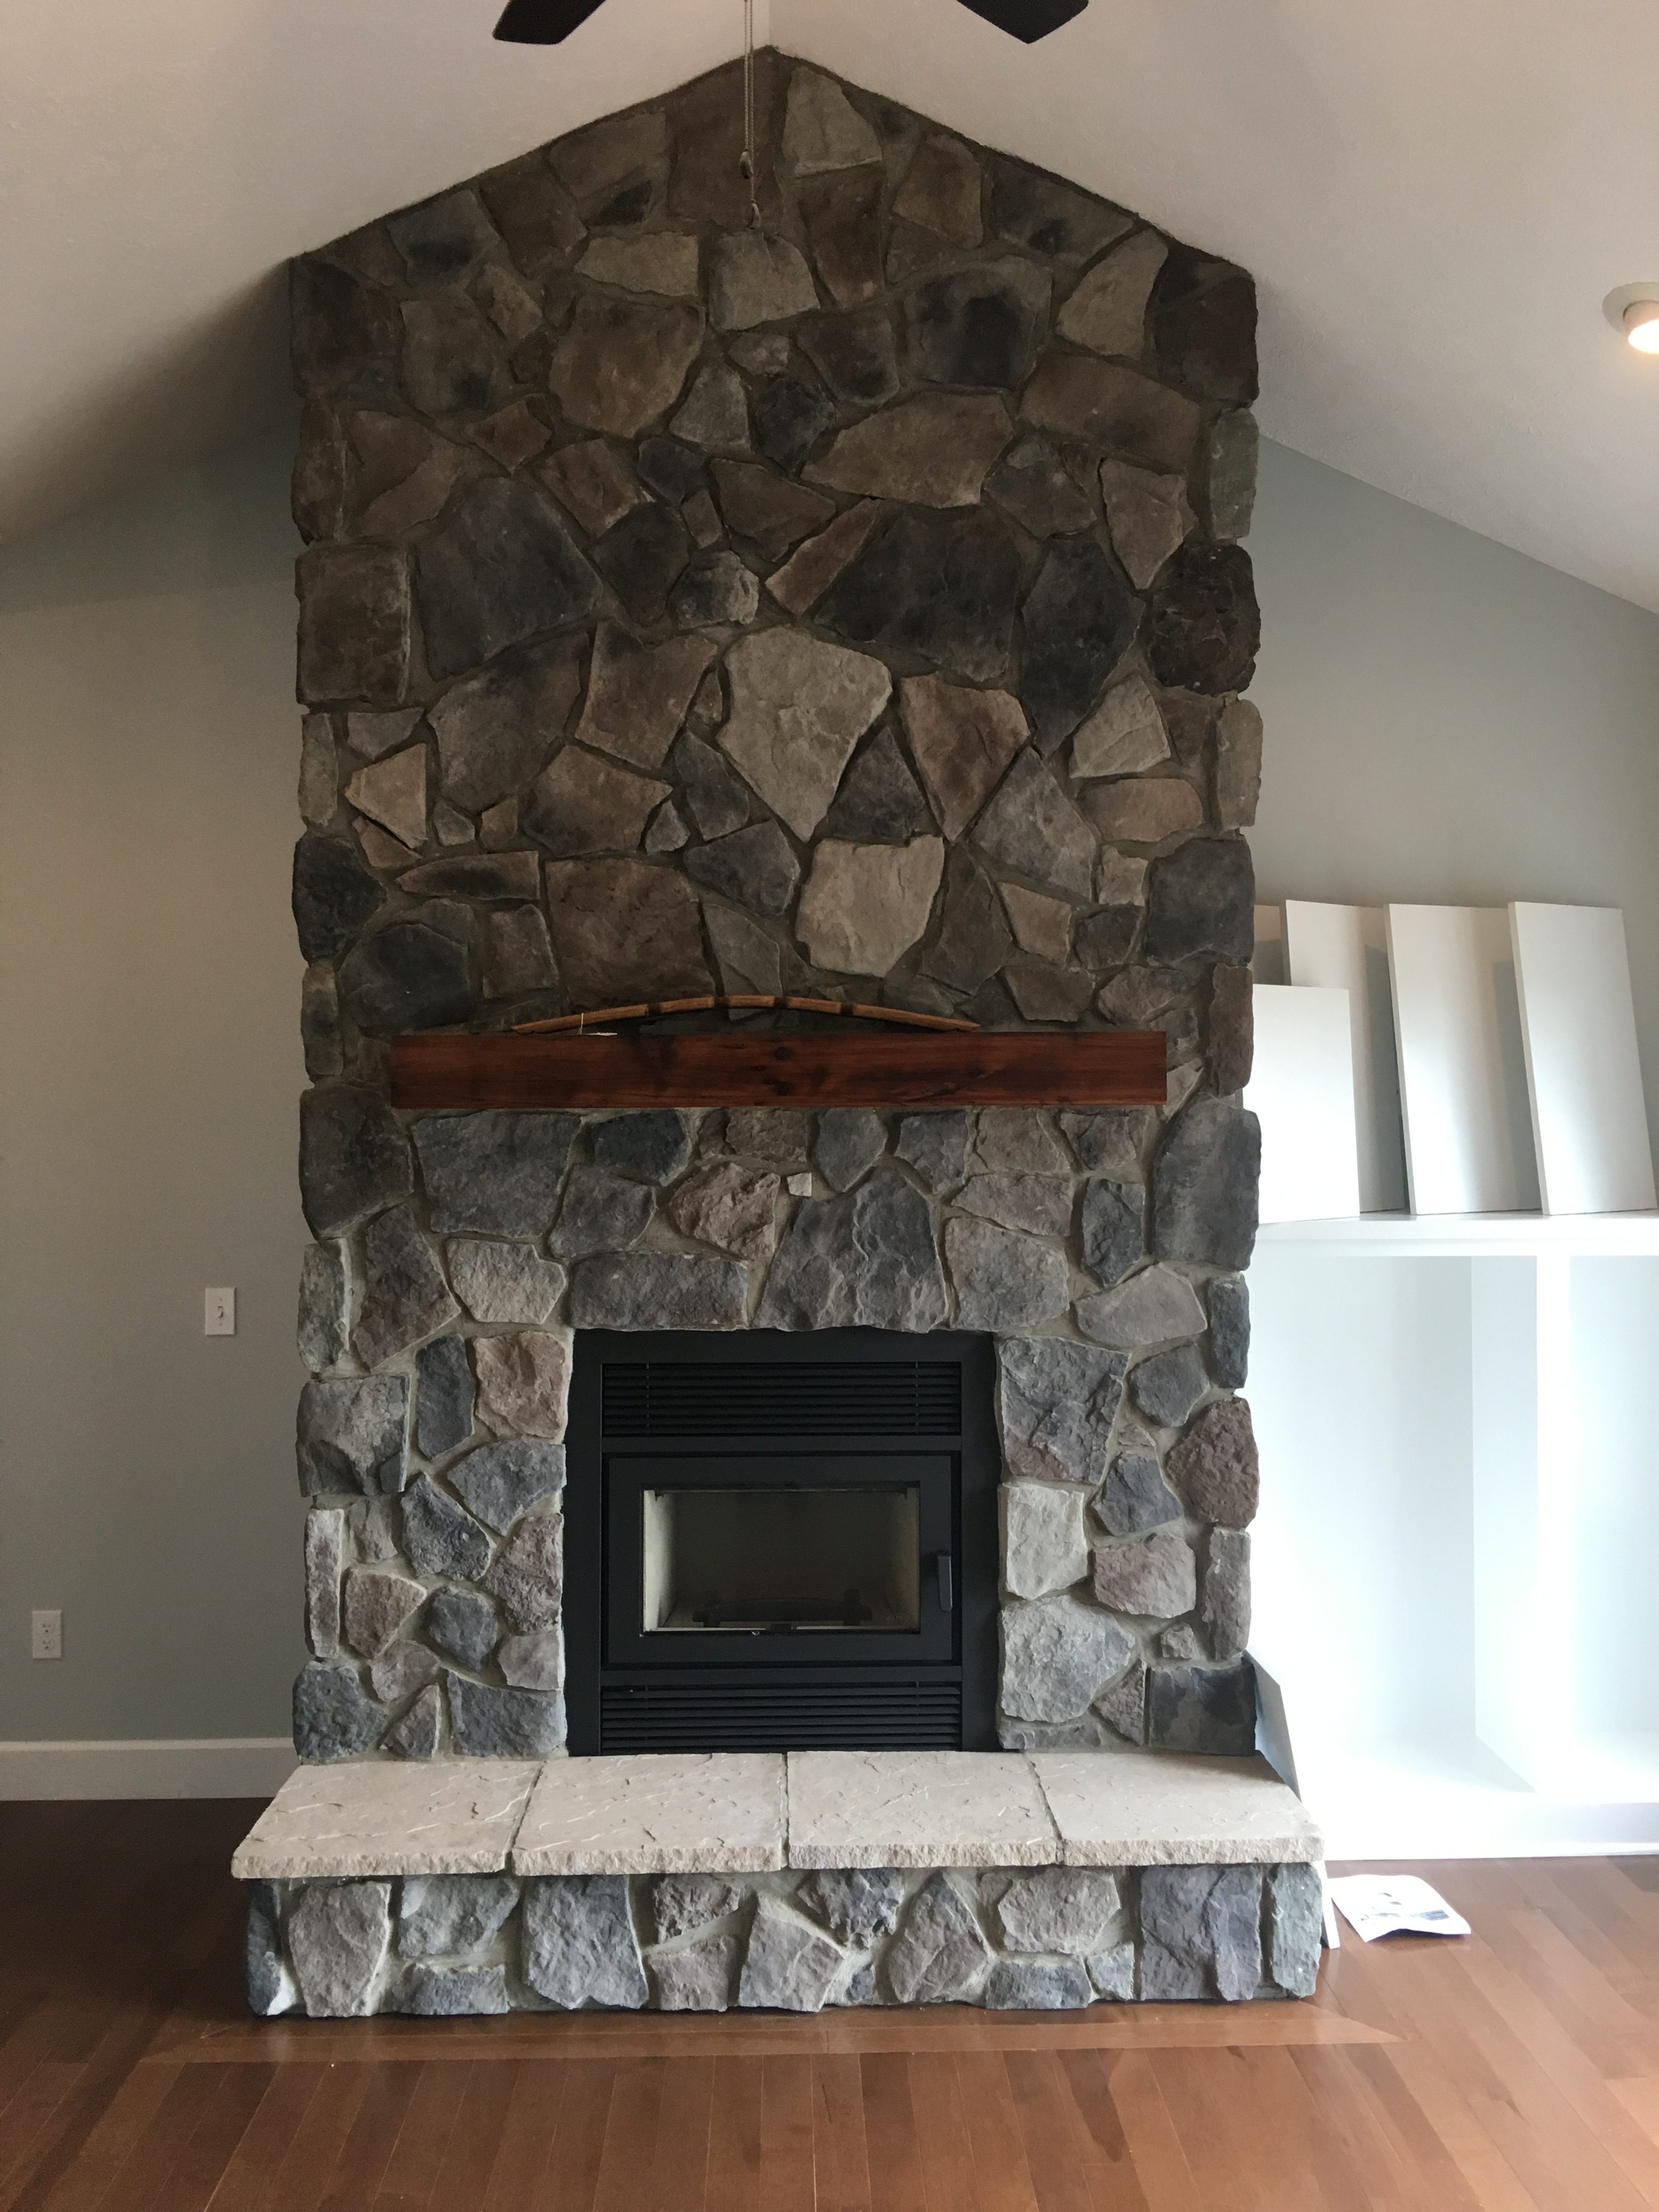 Image of a traditional Brentwood wood fireplace by Astria featuring rustic stonework facing and mantle.